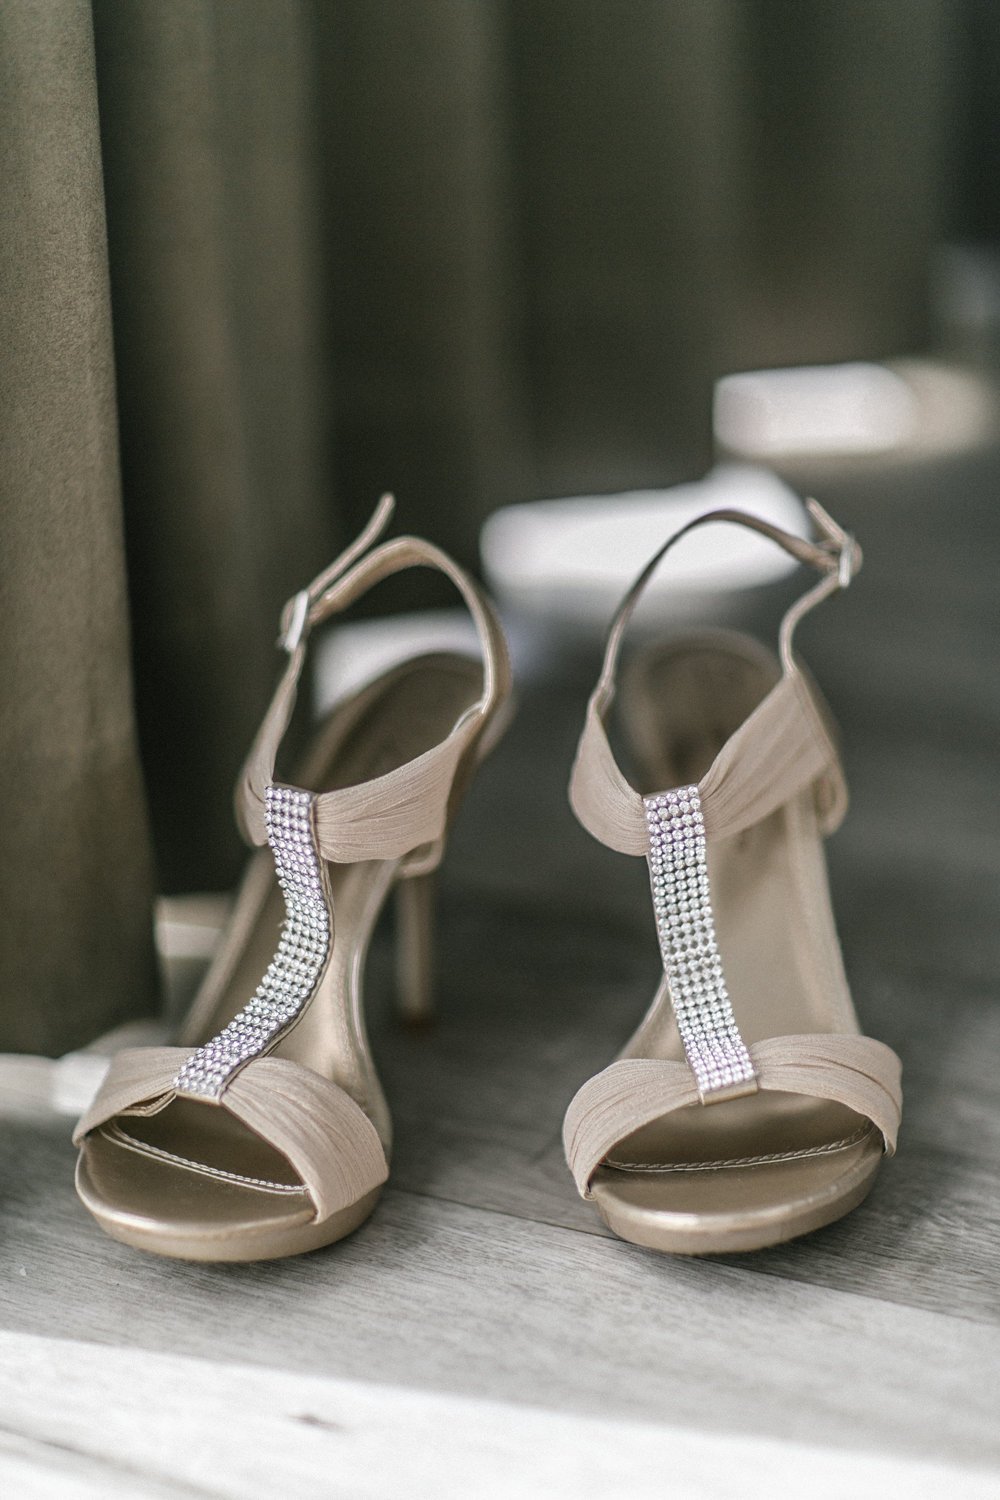 brides shoes from davids bridal